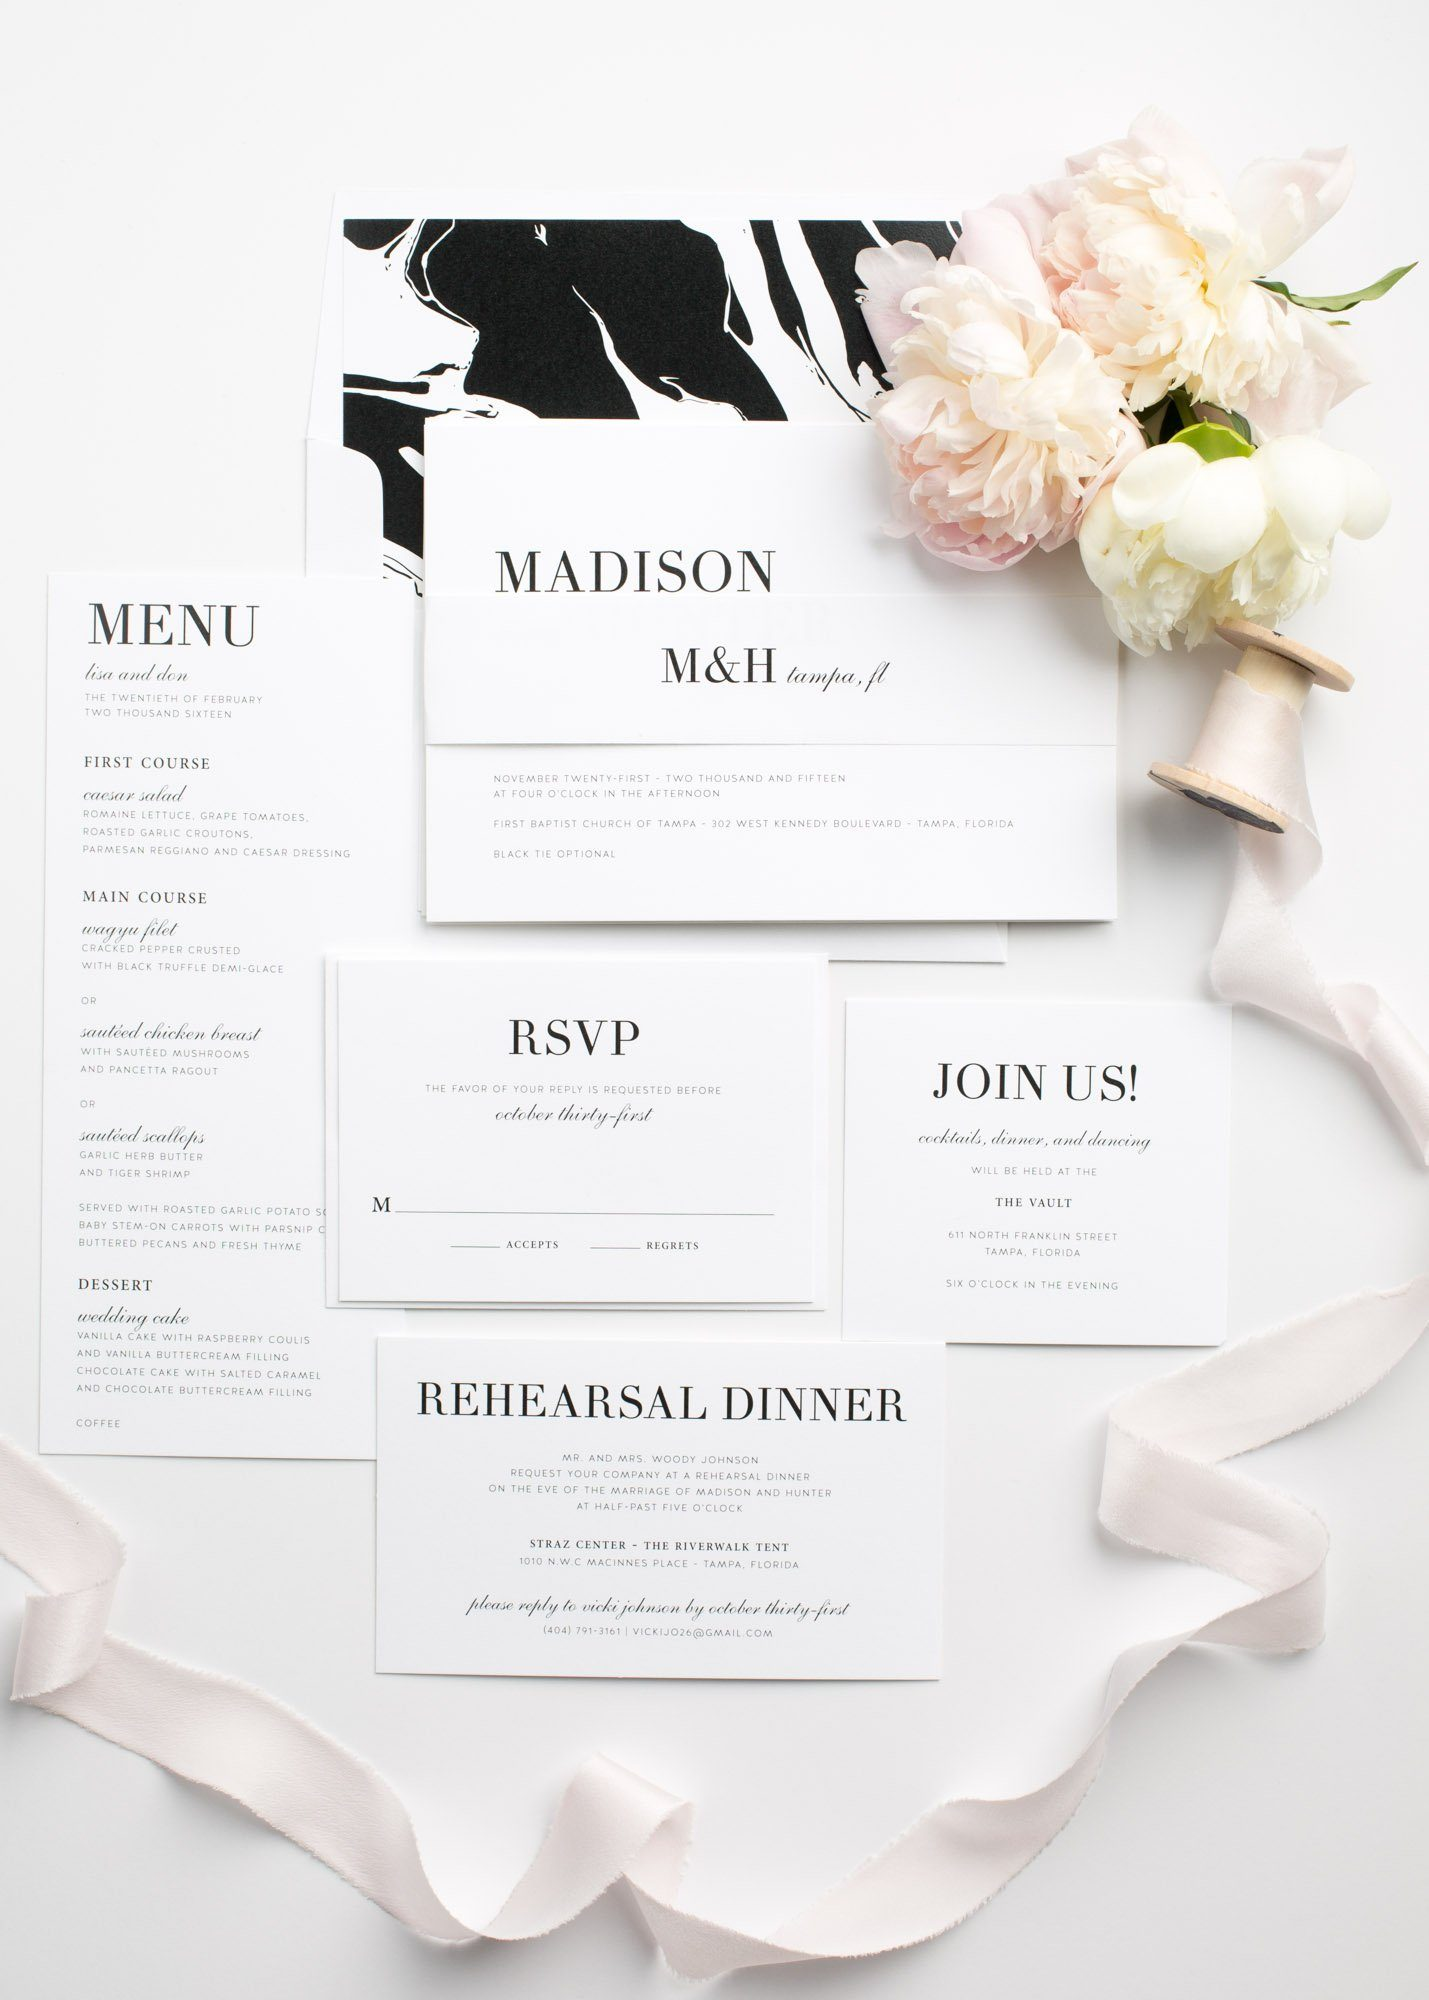 Urban Wedding Invitations in Black and White with a Marble Envelope Liner